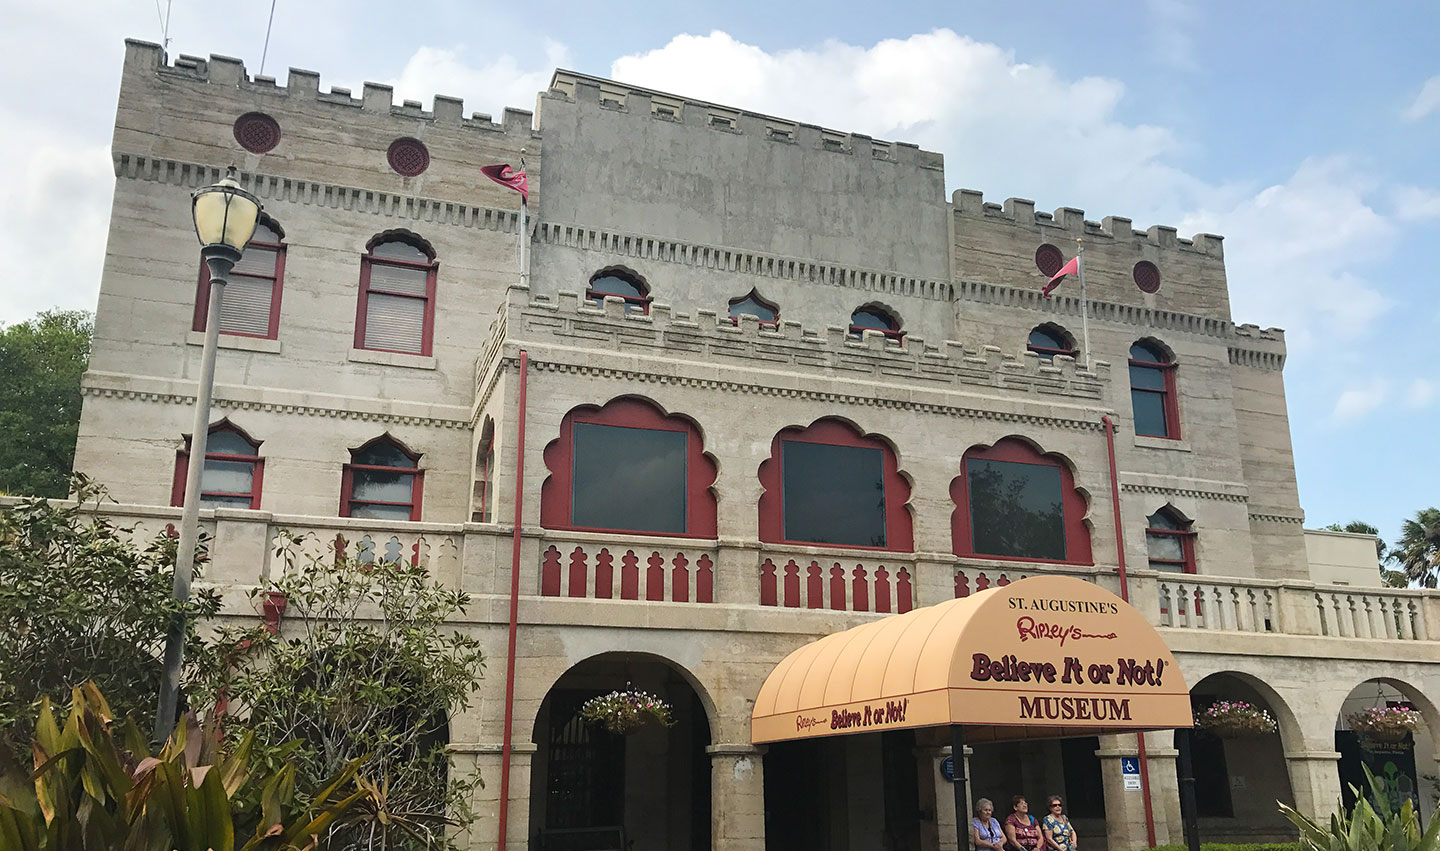 List of Fun Things To Do In St. Augustine, Florida - Ripley's Believe it Or Not Museum